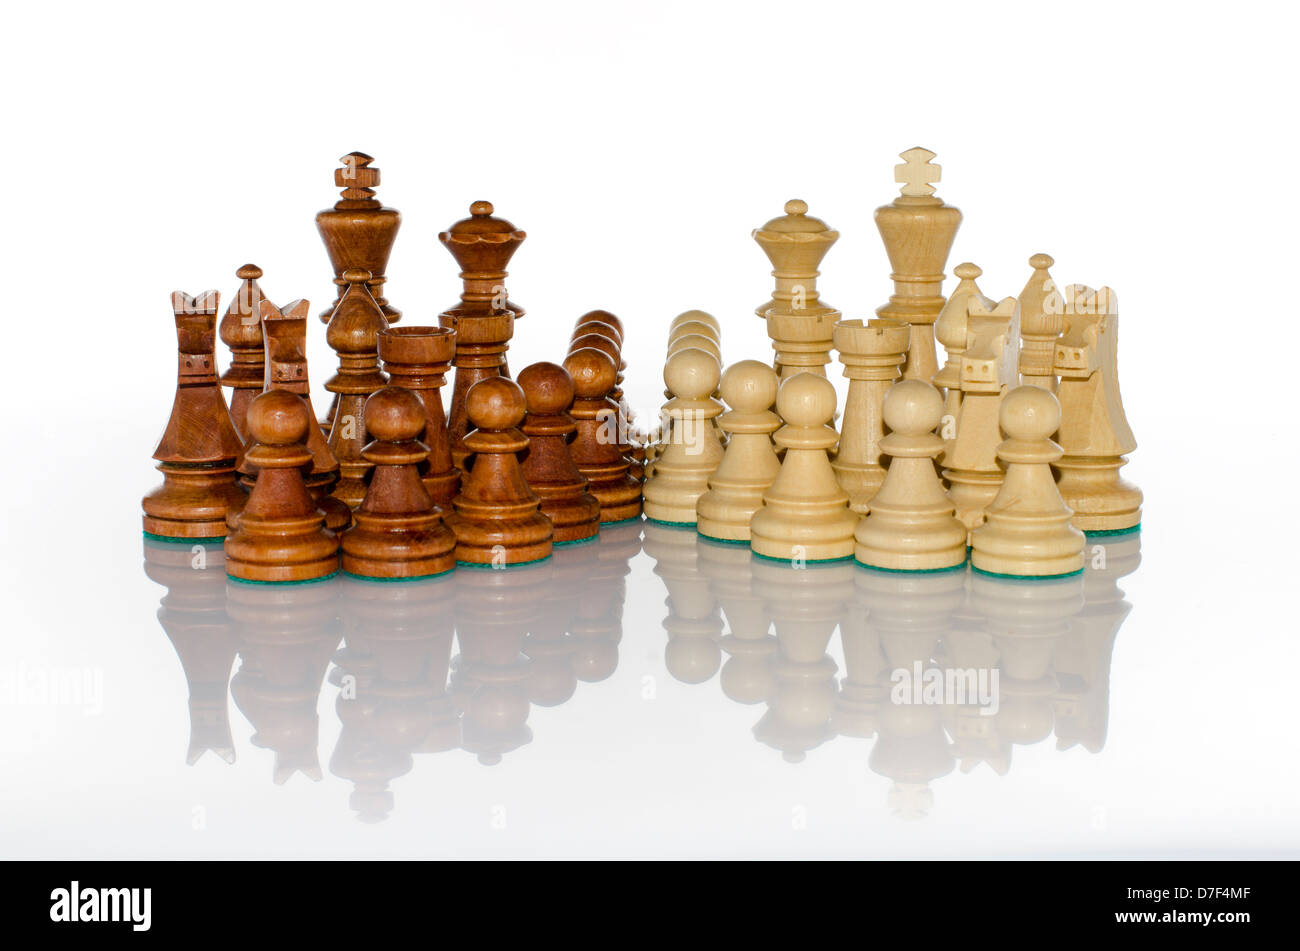 ... Chess Sets Wooden Chess Sets Stock Photos U0026 Chess Sets Stock Images  Alamy ...